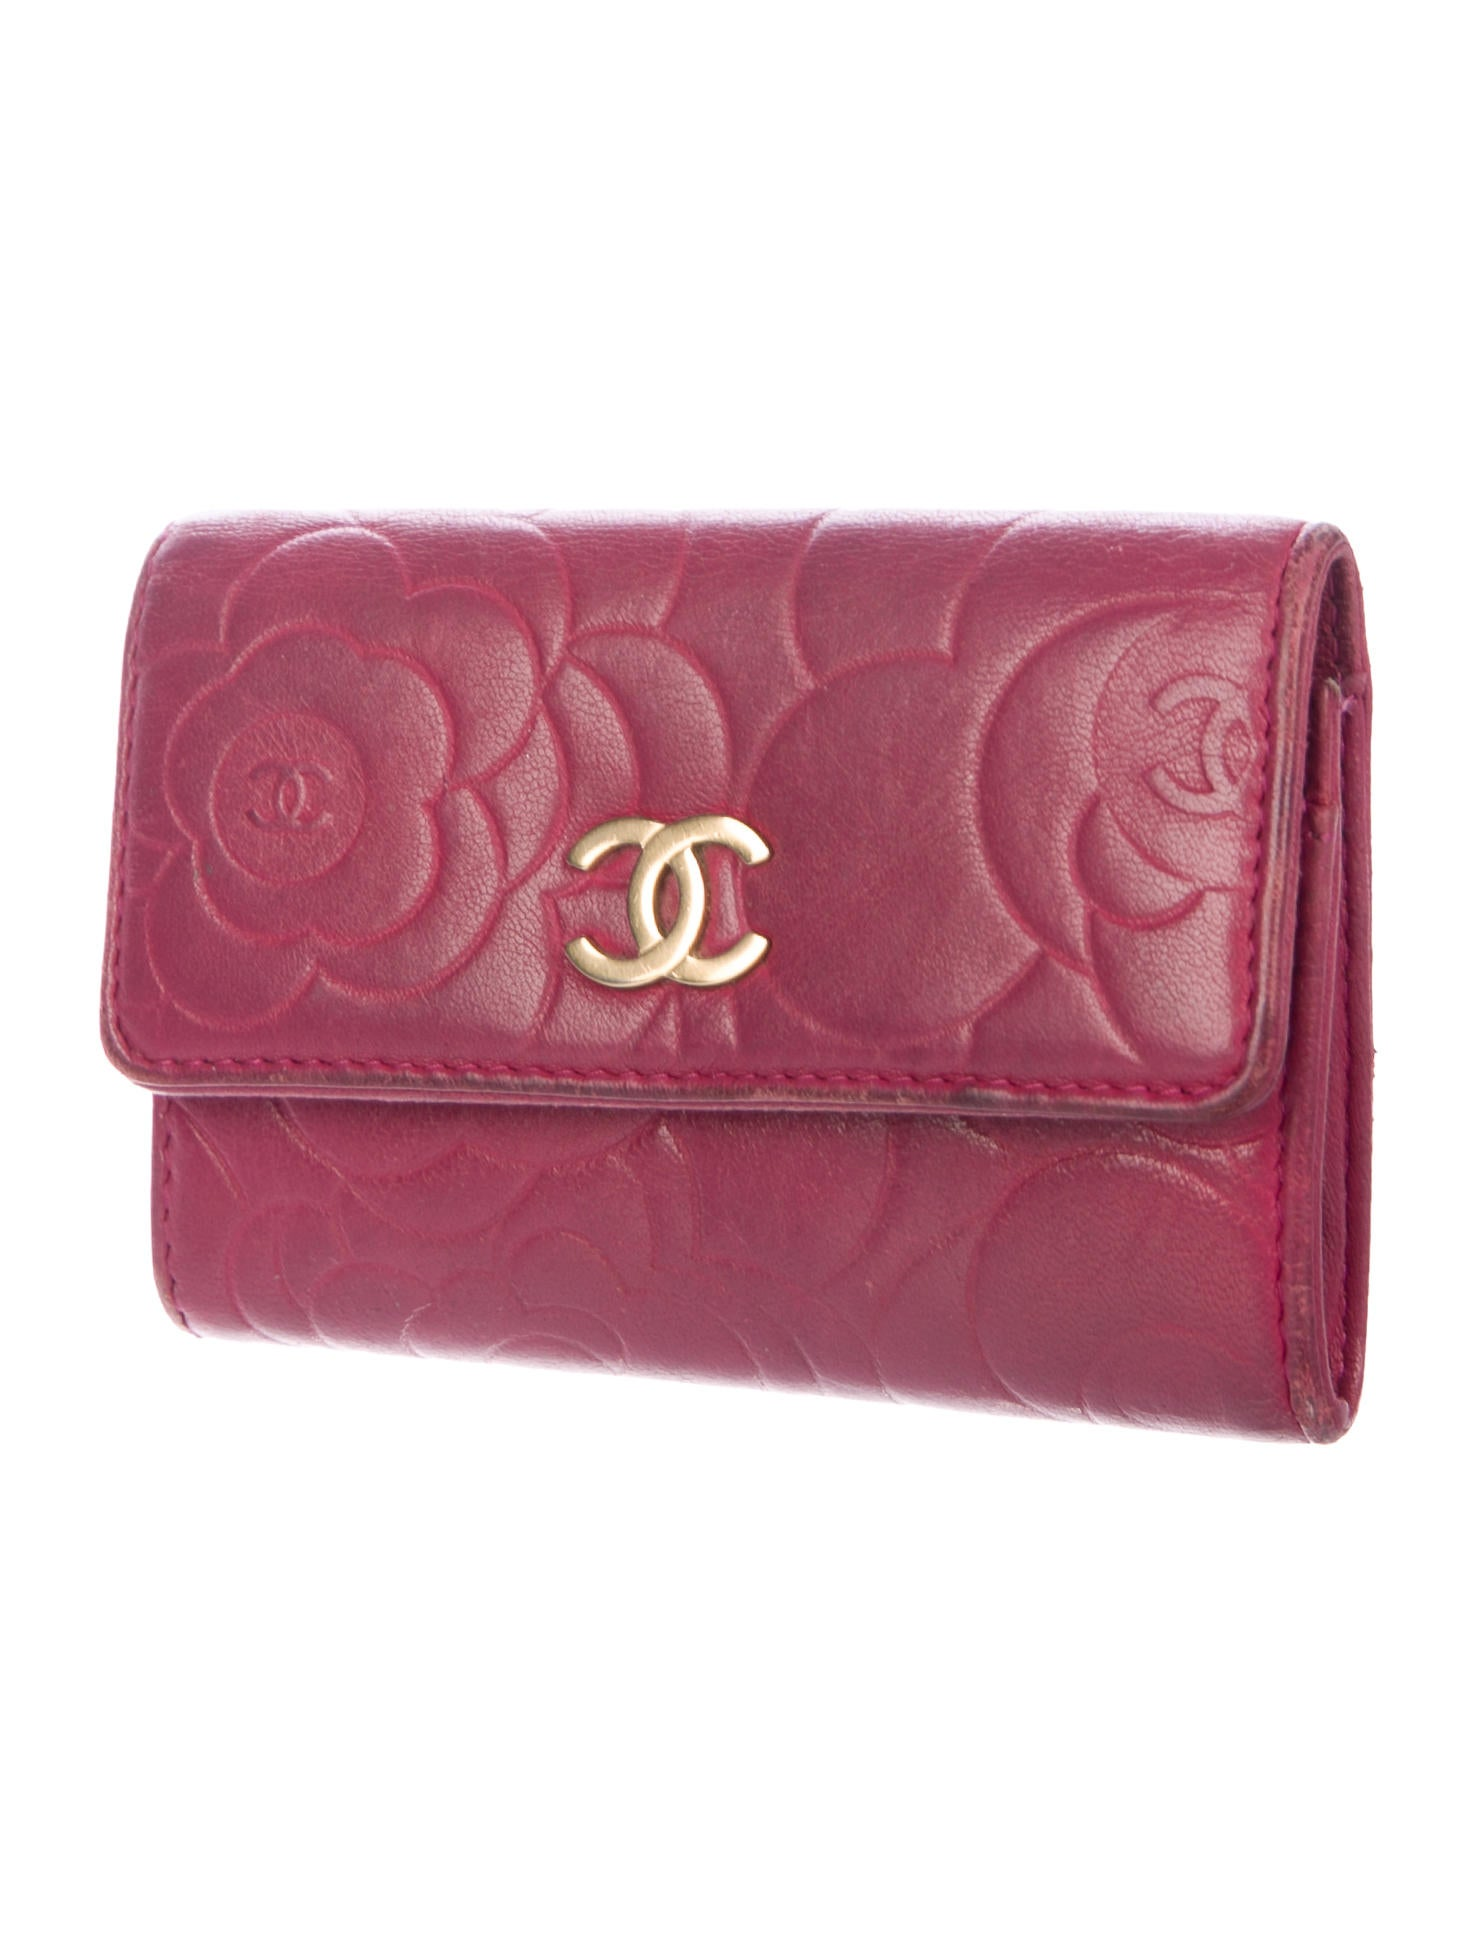 Chanel Camellia Business Card Holder - Accessories - CHA246125 | The ...